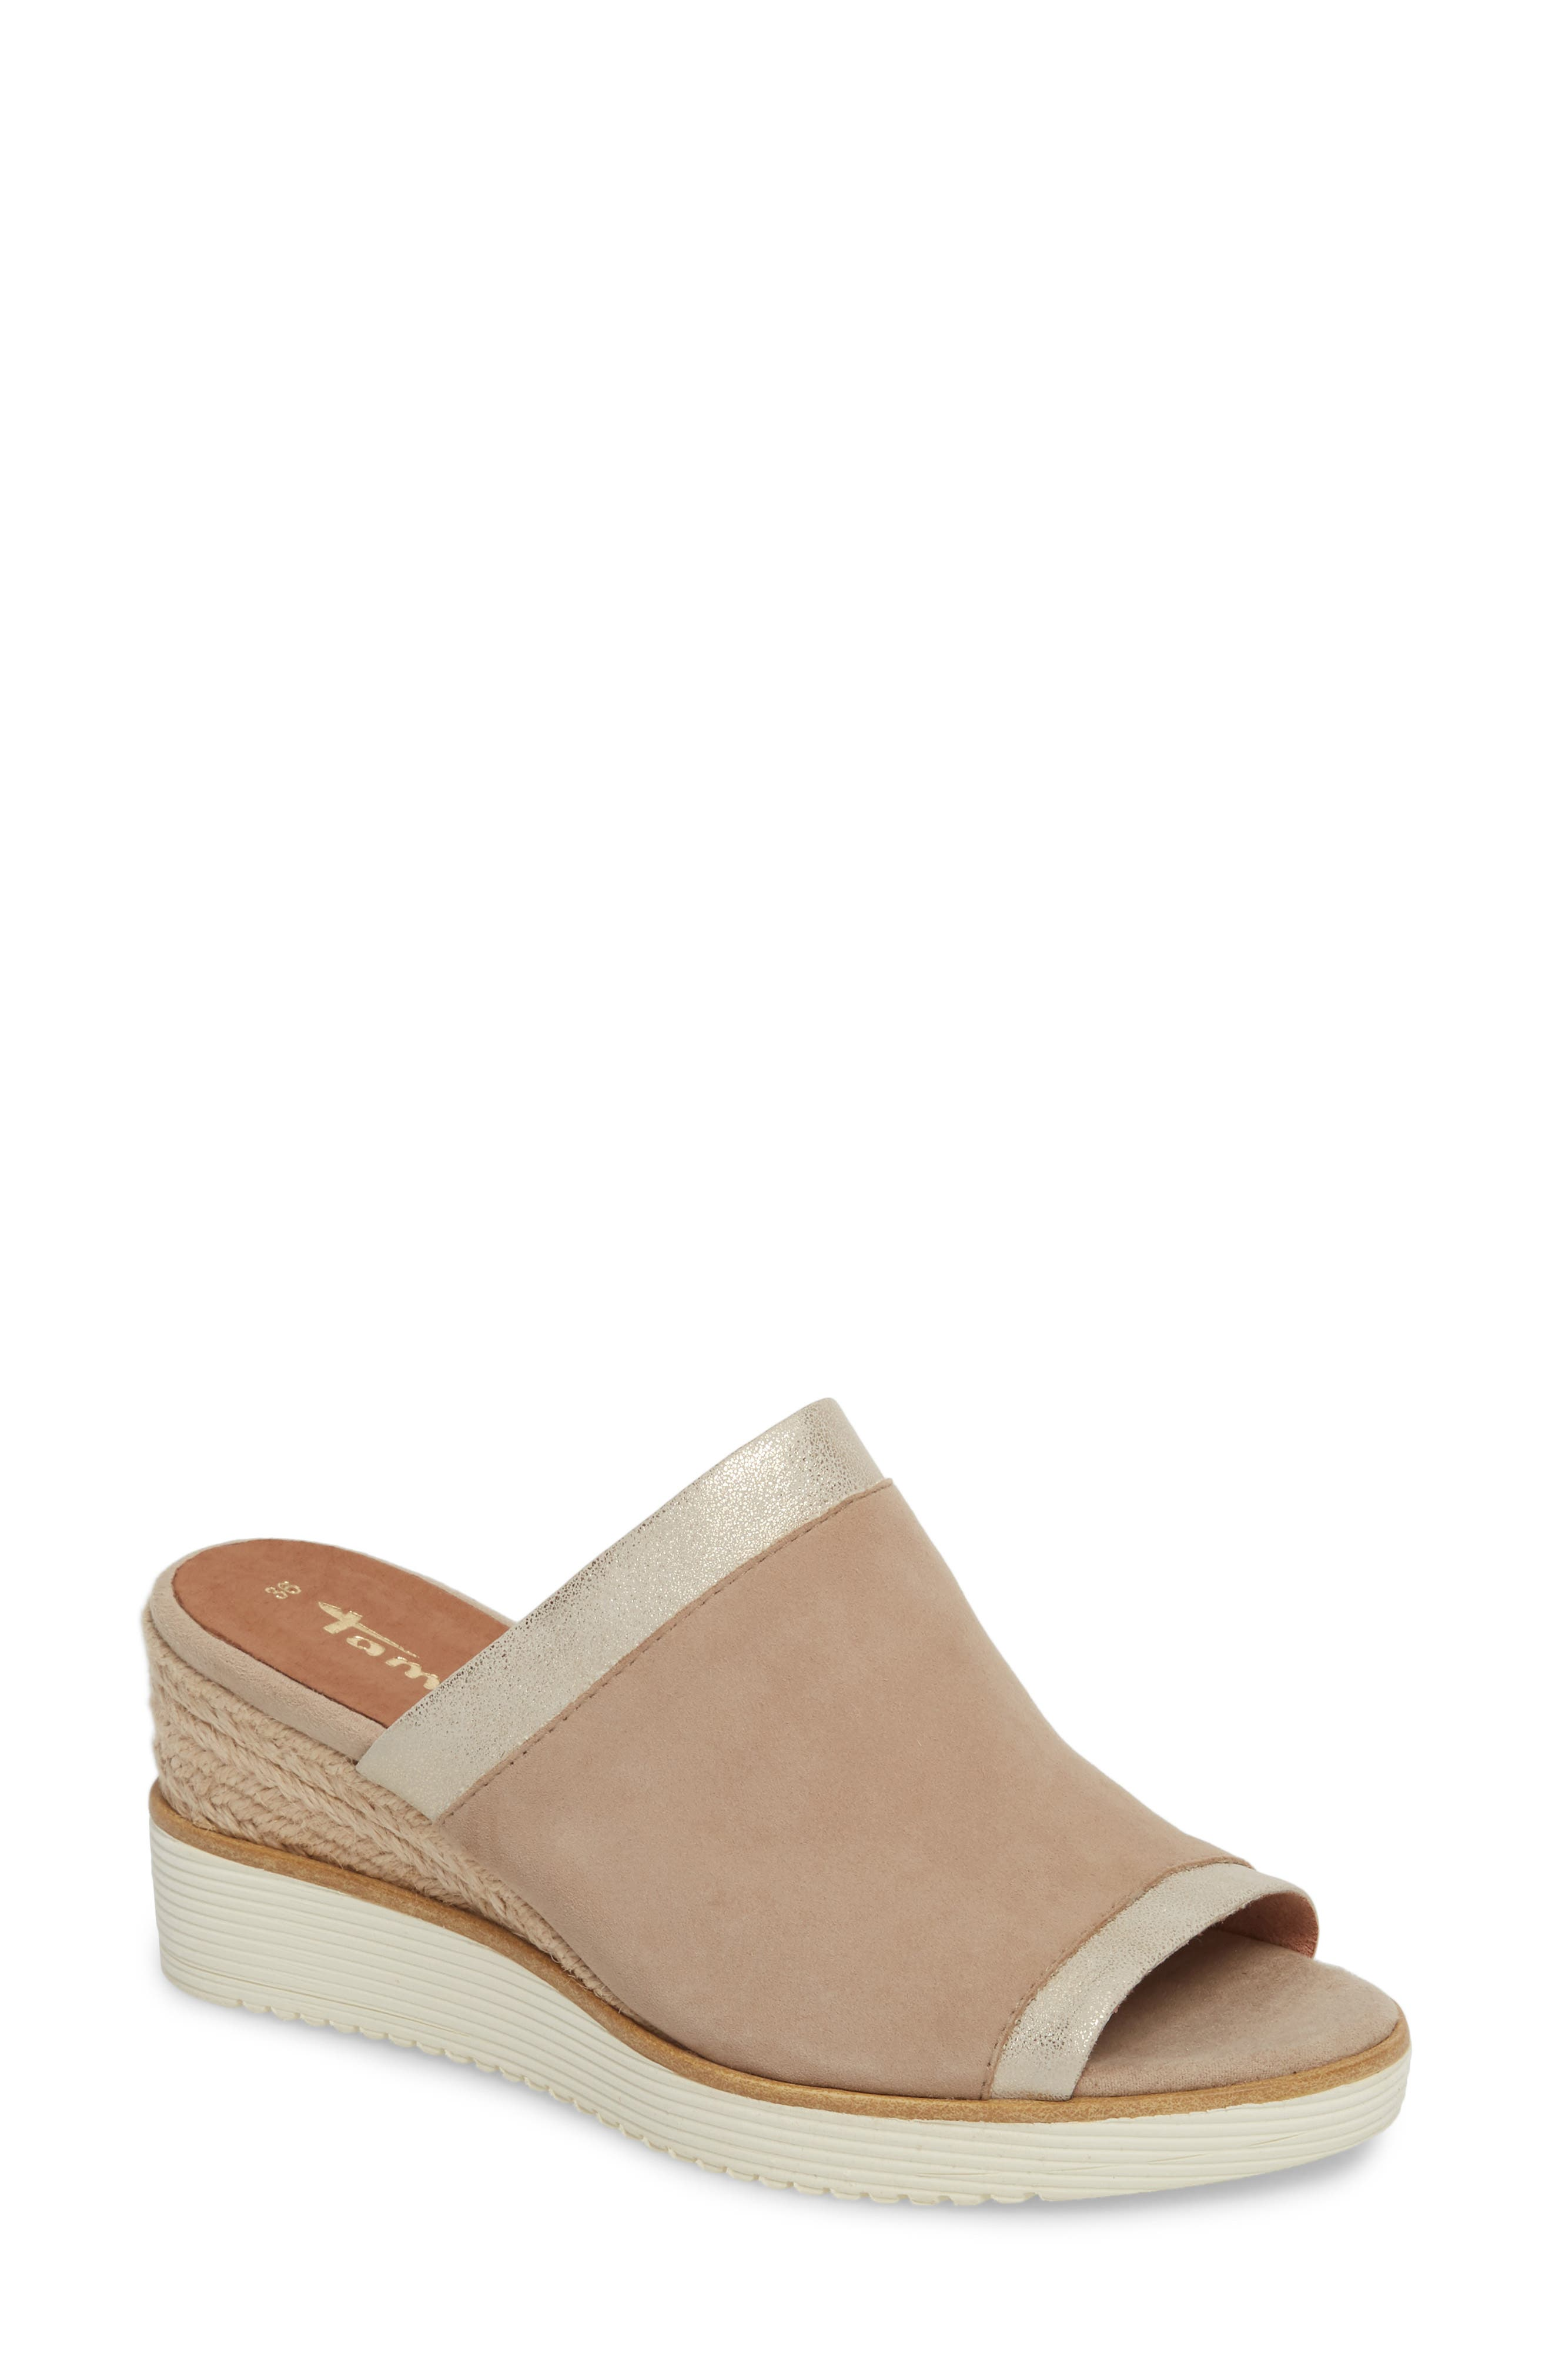 Alis Wedge Sandal,                         Main,                         color, Shell Leather